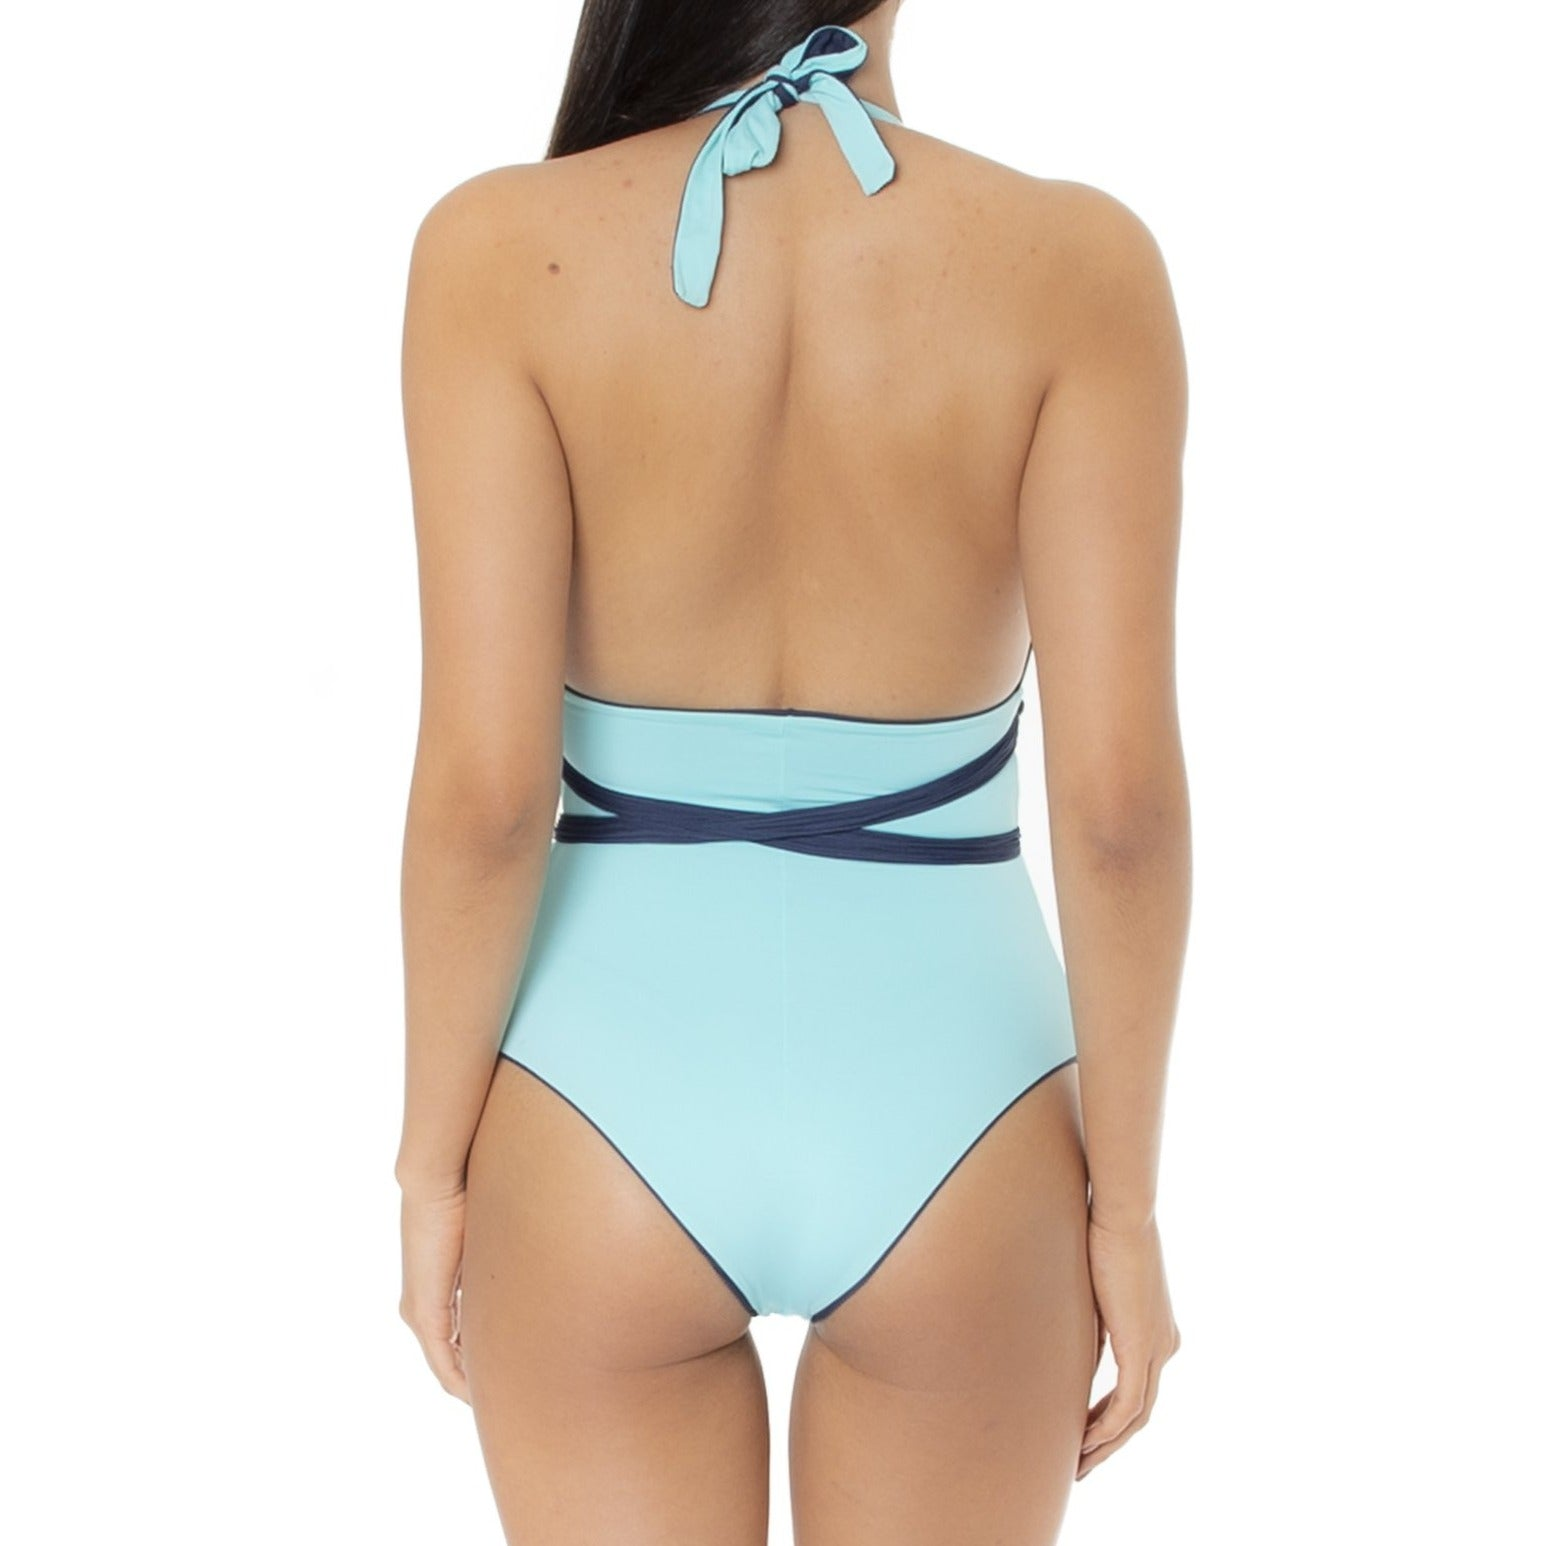 Camille Turquoise/Navy Reversible Bodysuit with Removable Macrame - charmosaswimwear.com